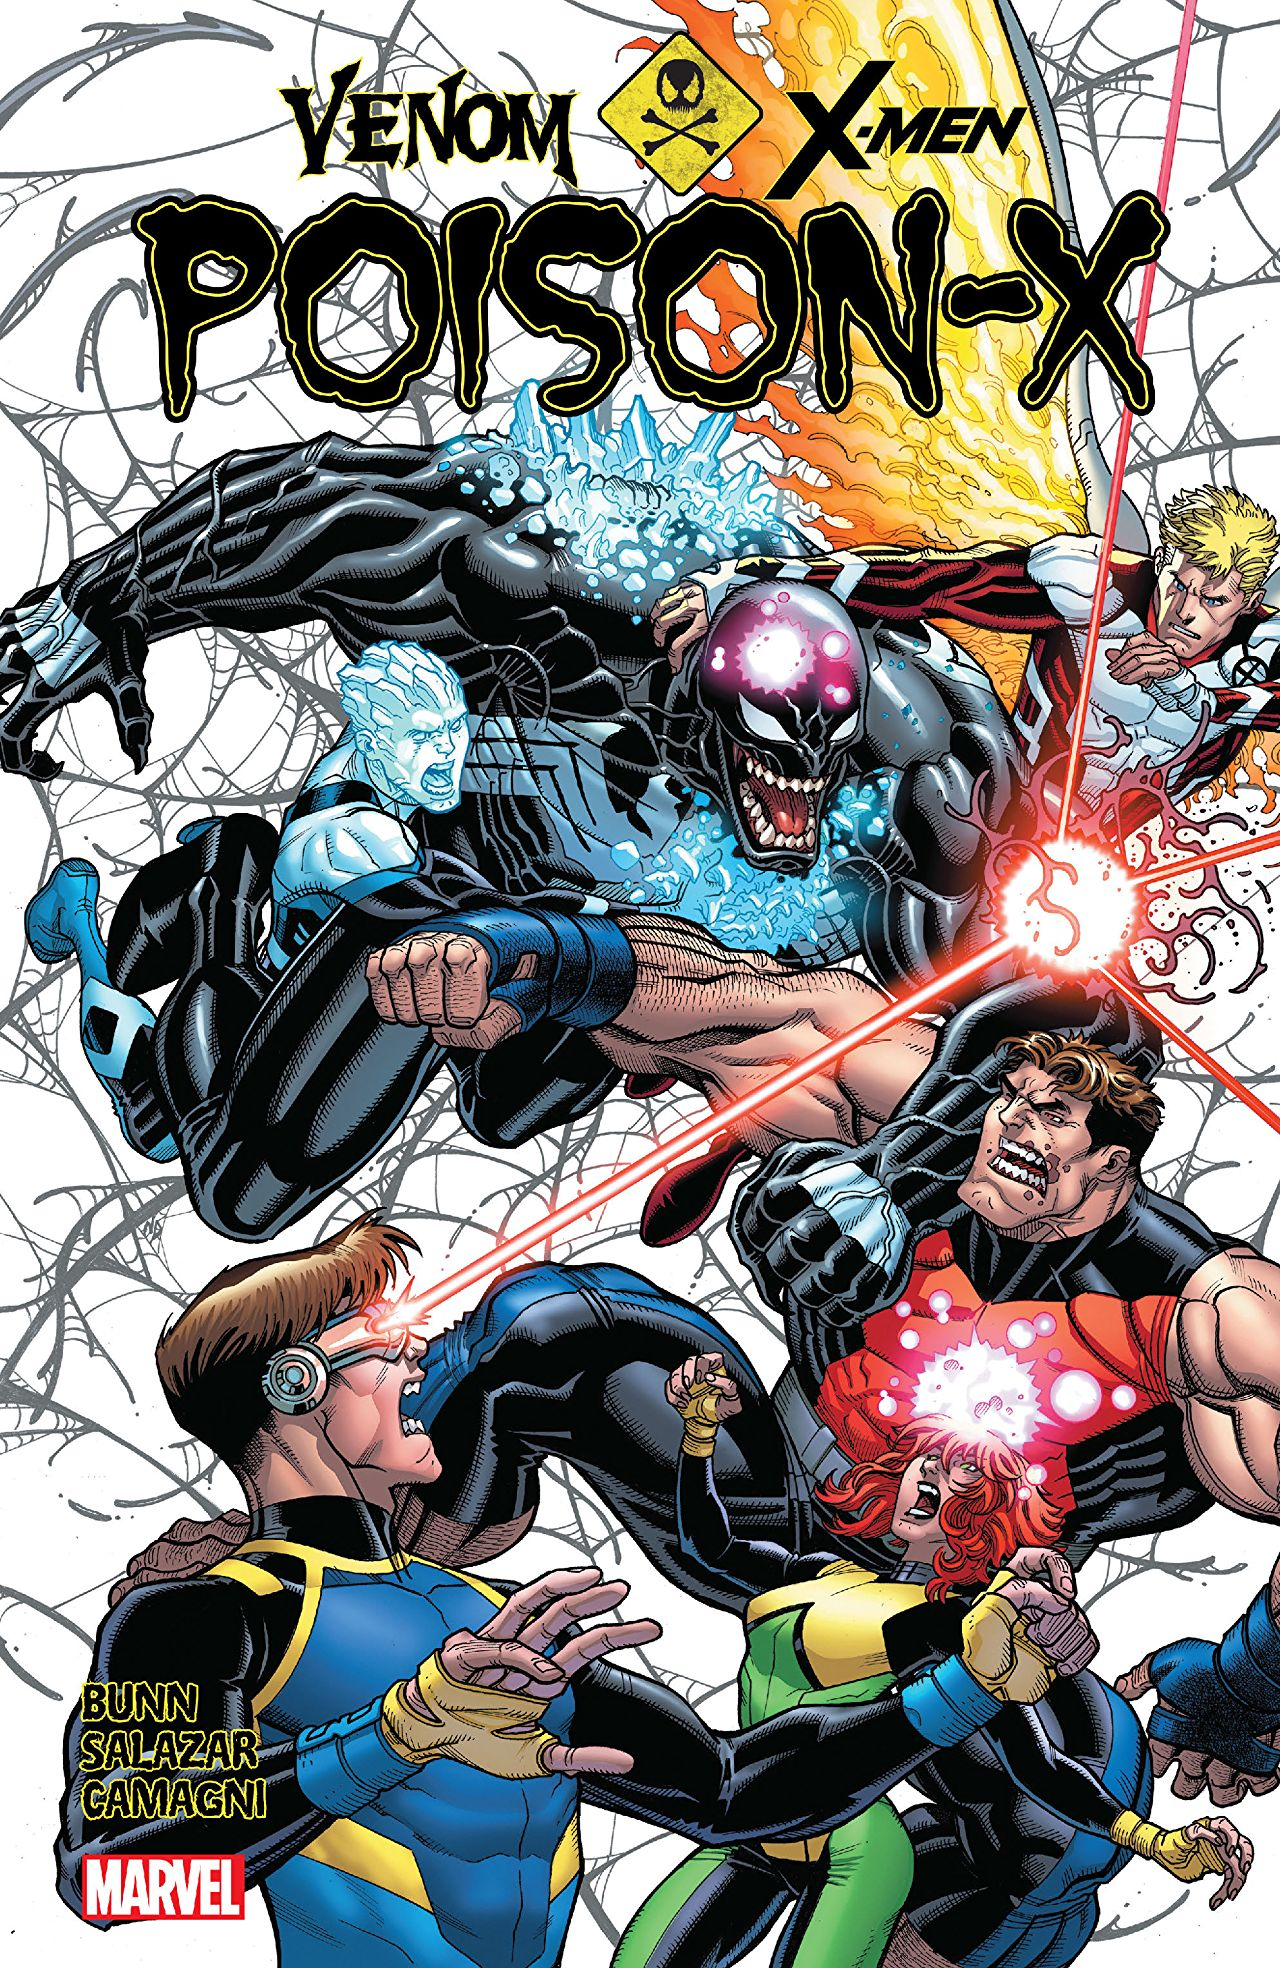 Venom joins the cast of X-Men Blue in the team-up no one demanded: Poison-X!